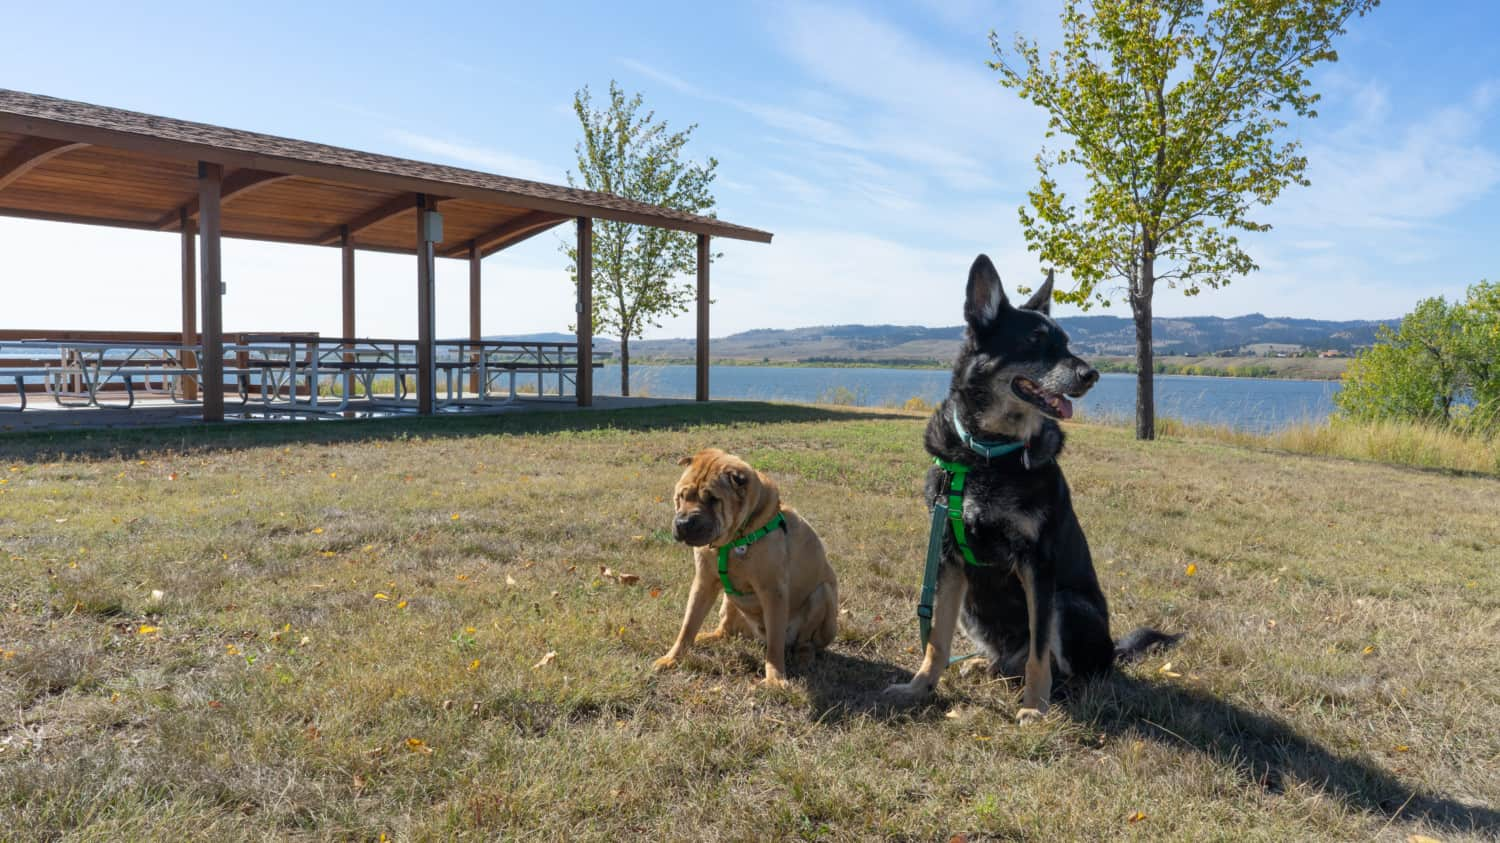 Ty the Shar-pei and Buster the German Shepherd from GoPetFriendly.com at the pet-friendly picnic area at Angostura Recreational Area in South Dakota's Black Hills